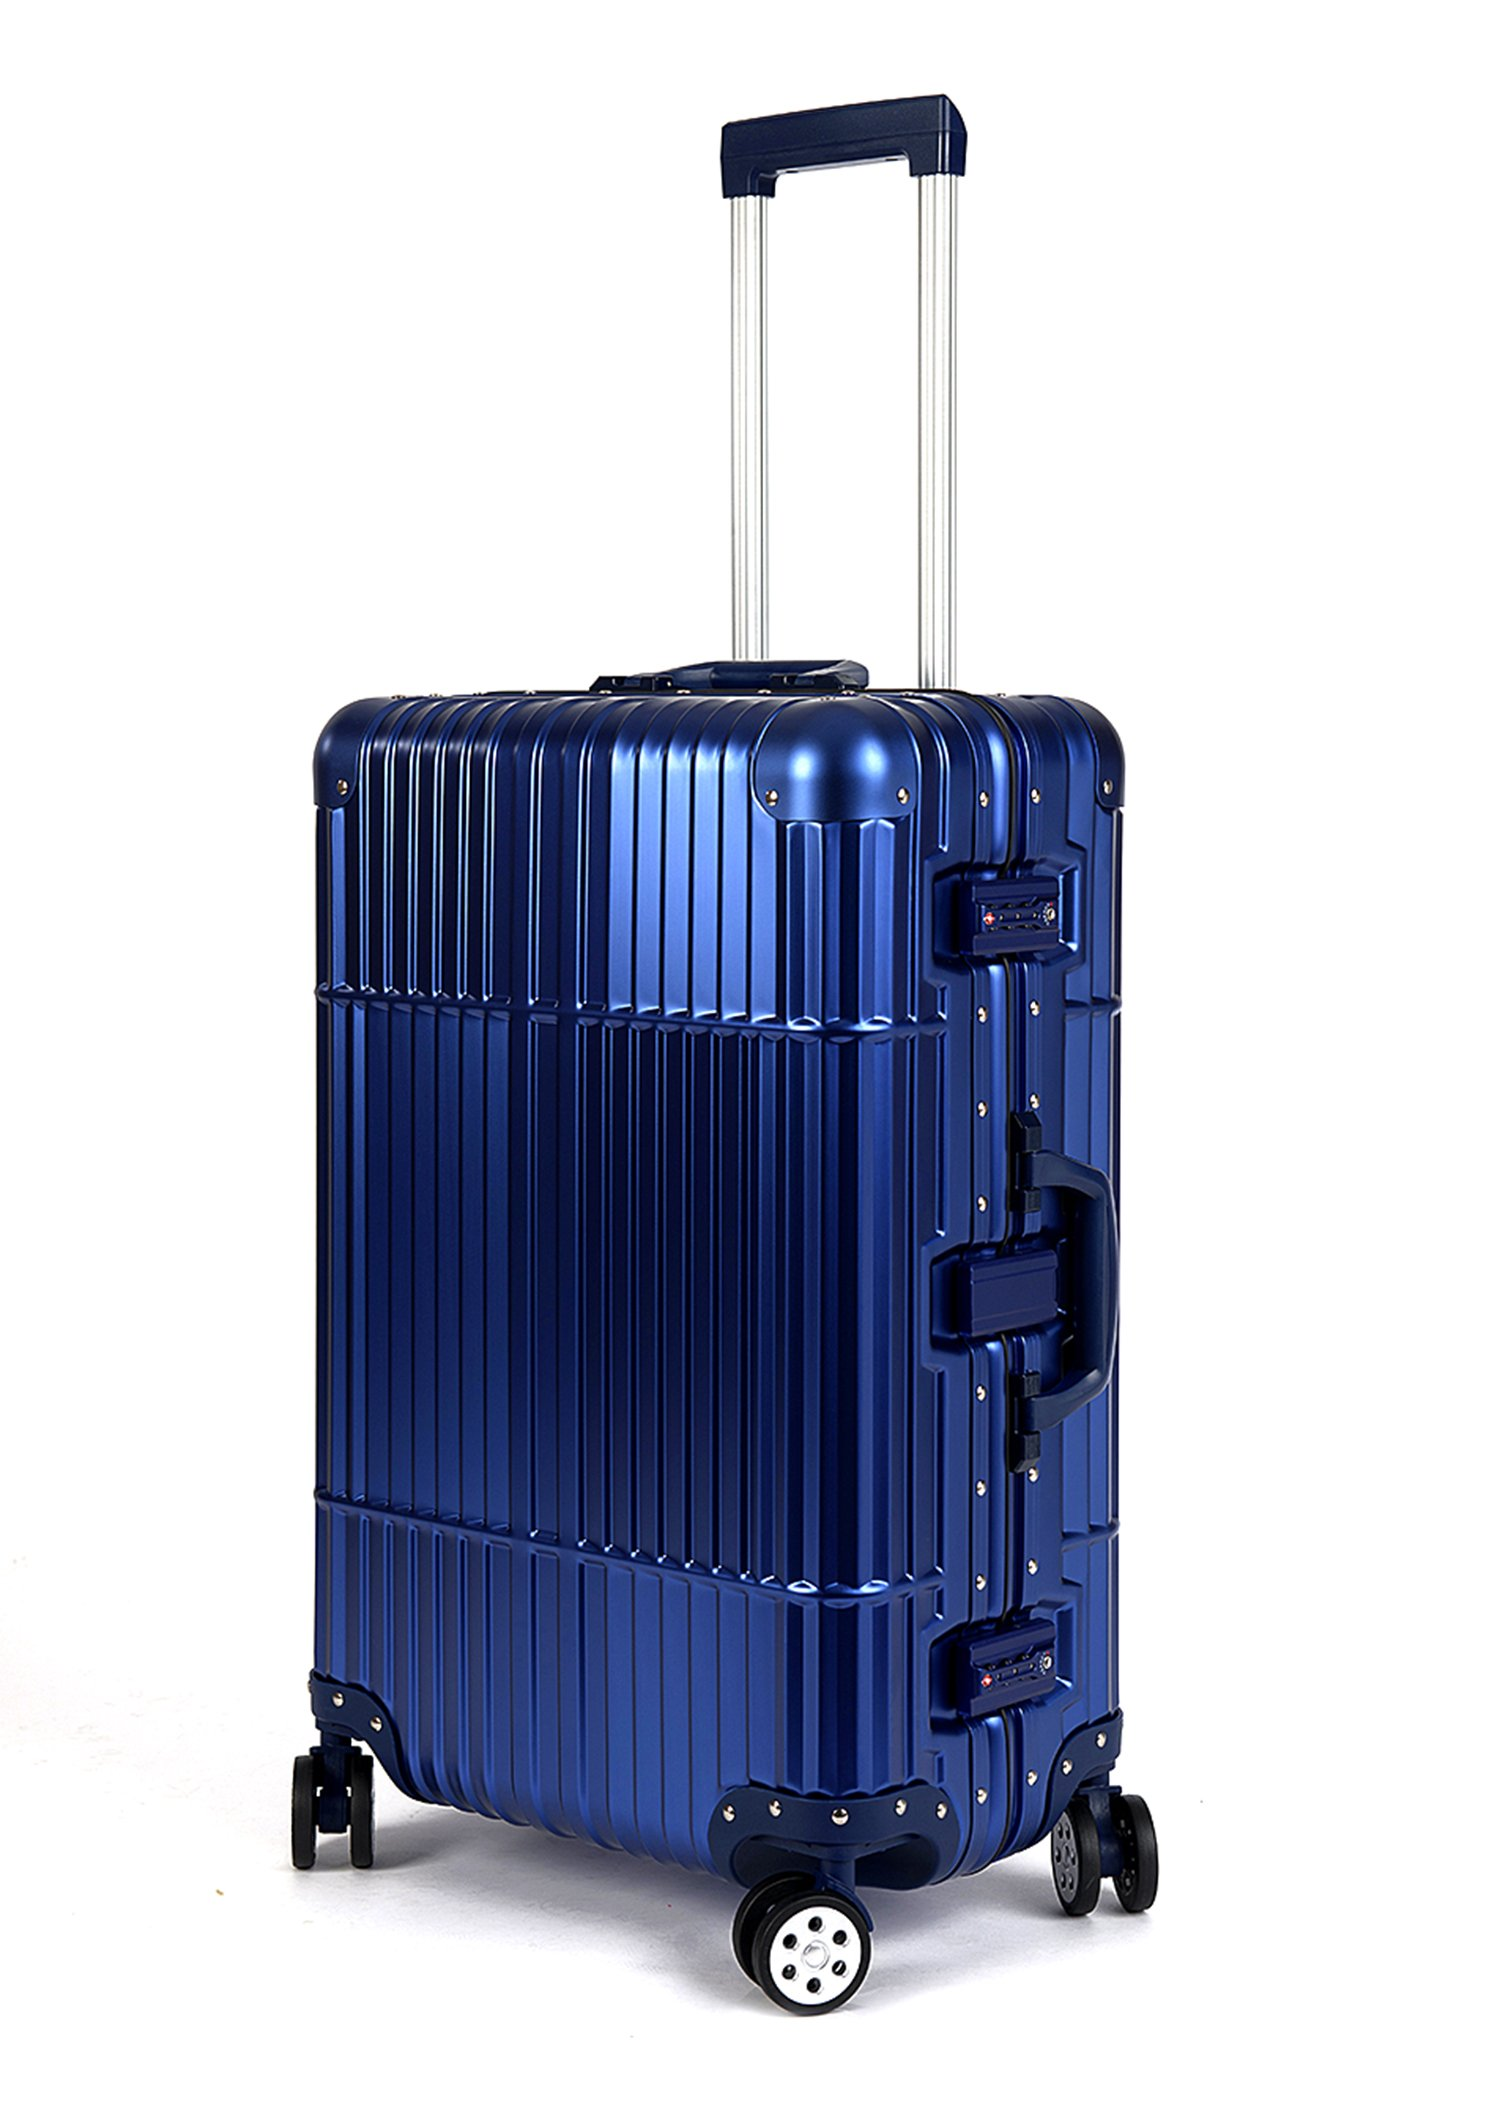 Cloud 9 - All Aluminum Luxury Hard Case Different Sizes to Choose From (20'',24'',28'') Durable with 360 Degree 4 Wheel Spinner TSA Approved Single Luggage Only